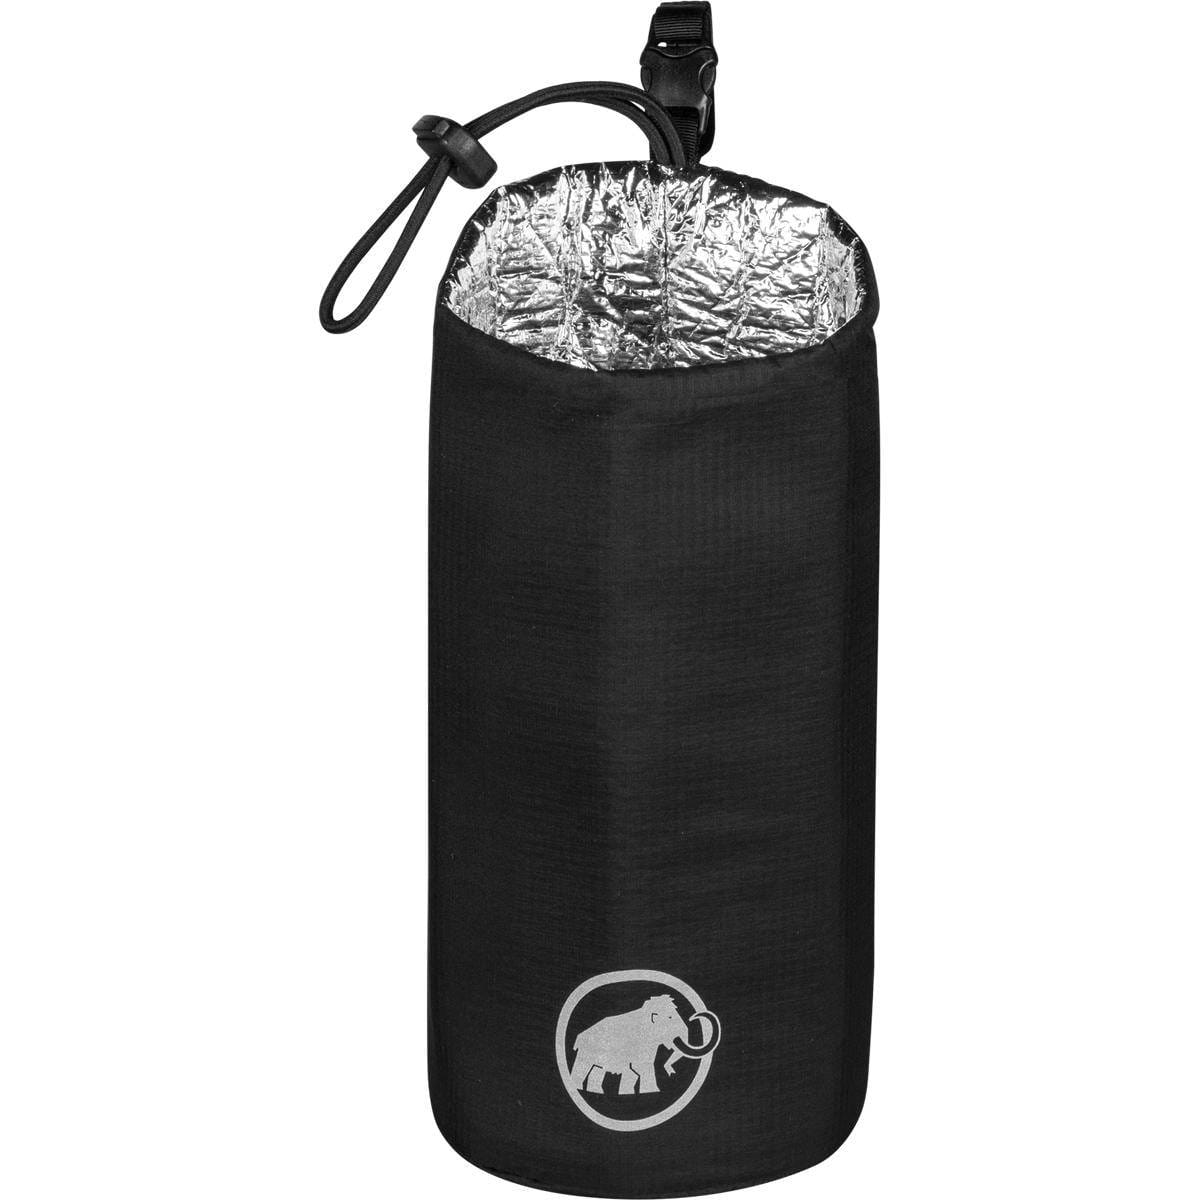 Mammut Add-on Bottle Holder Insulated Größe S - Flaschenhalter